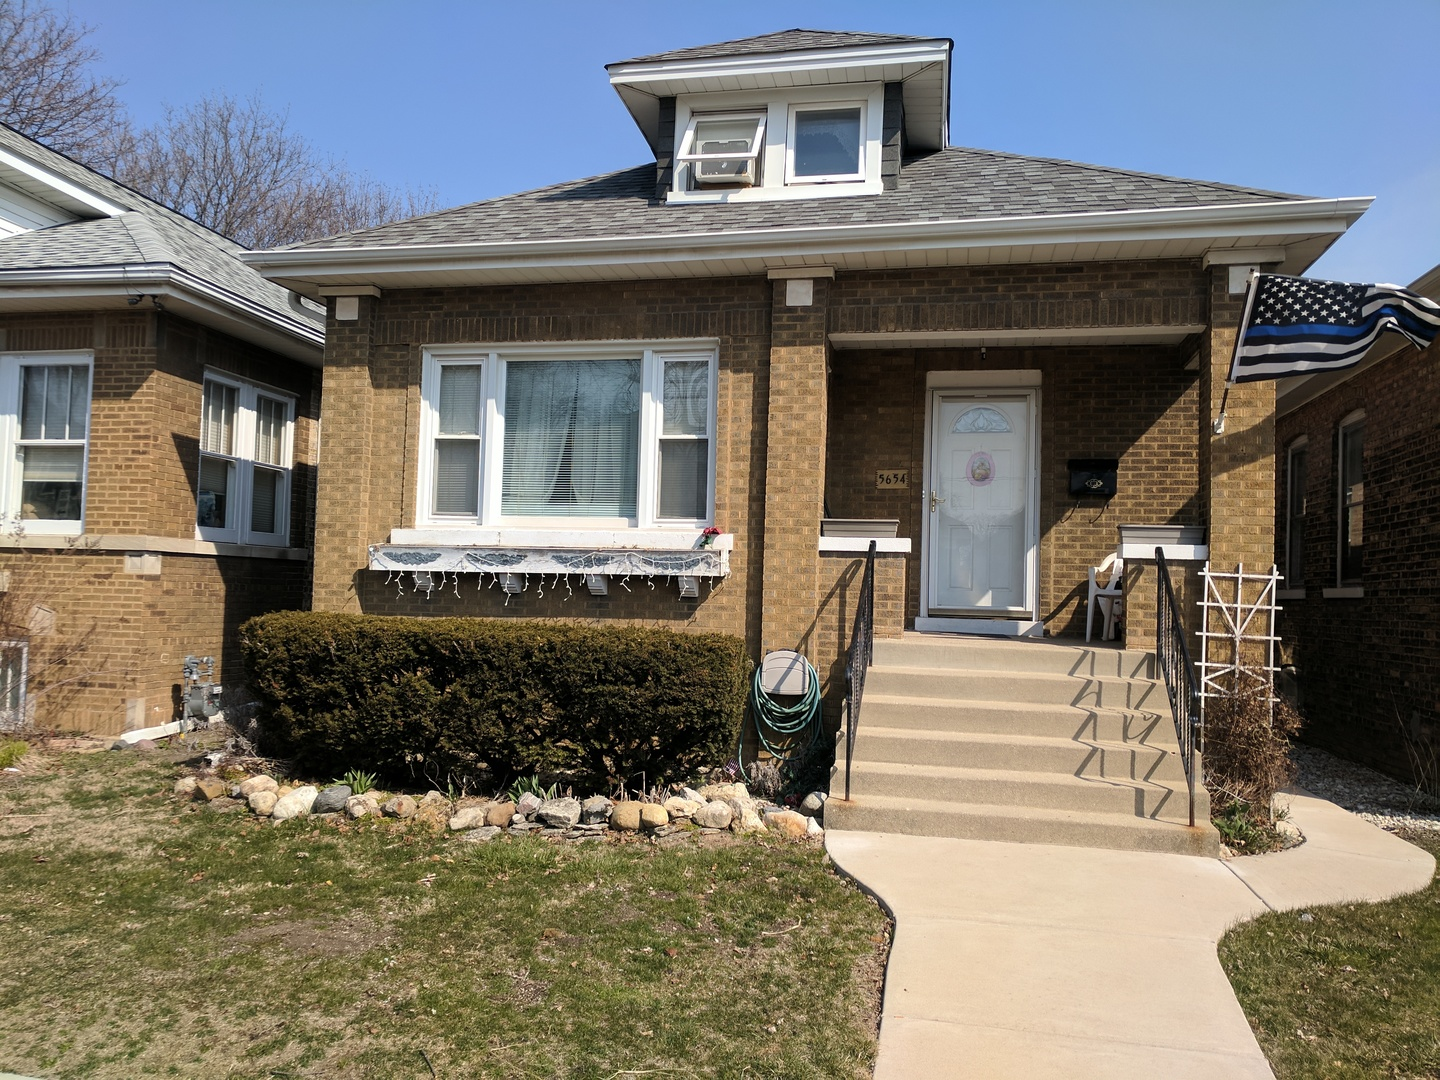 $322,000 - 4Br/3Ba -  for Sale in Chicago